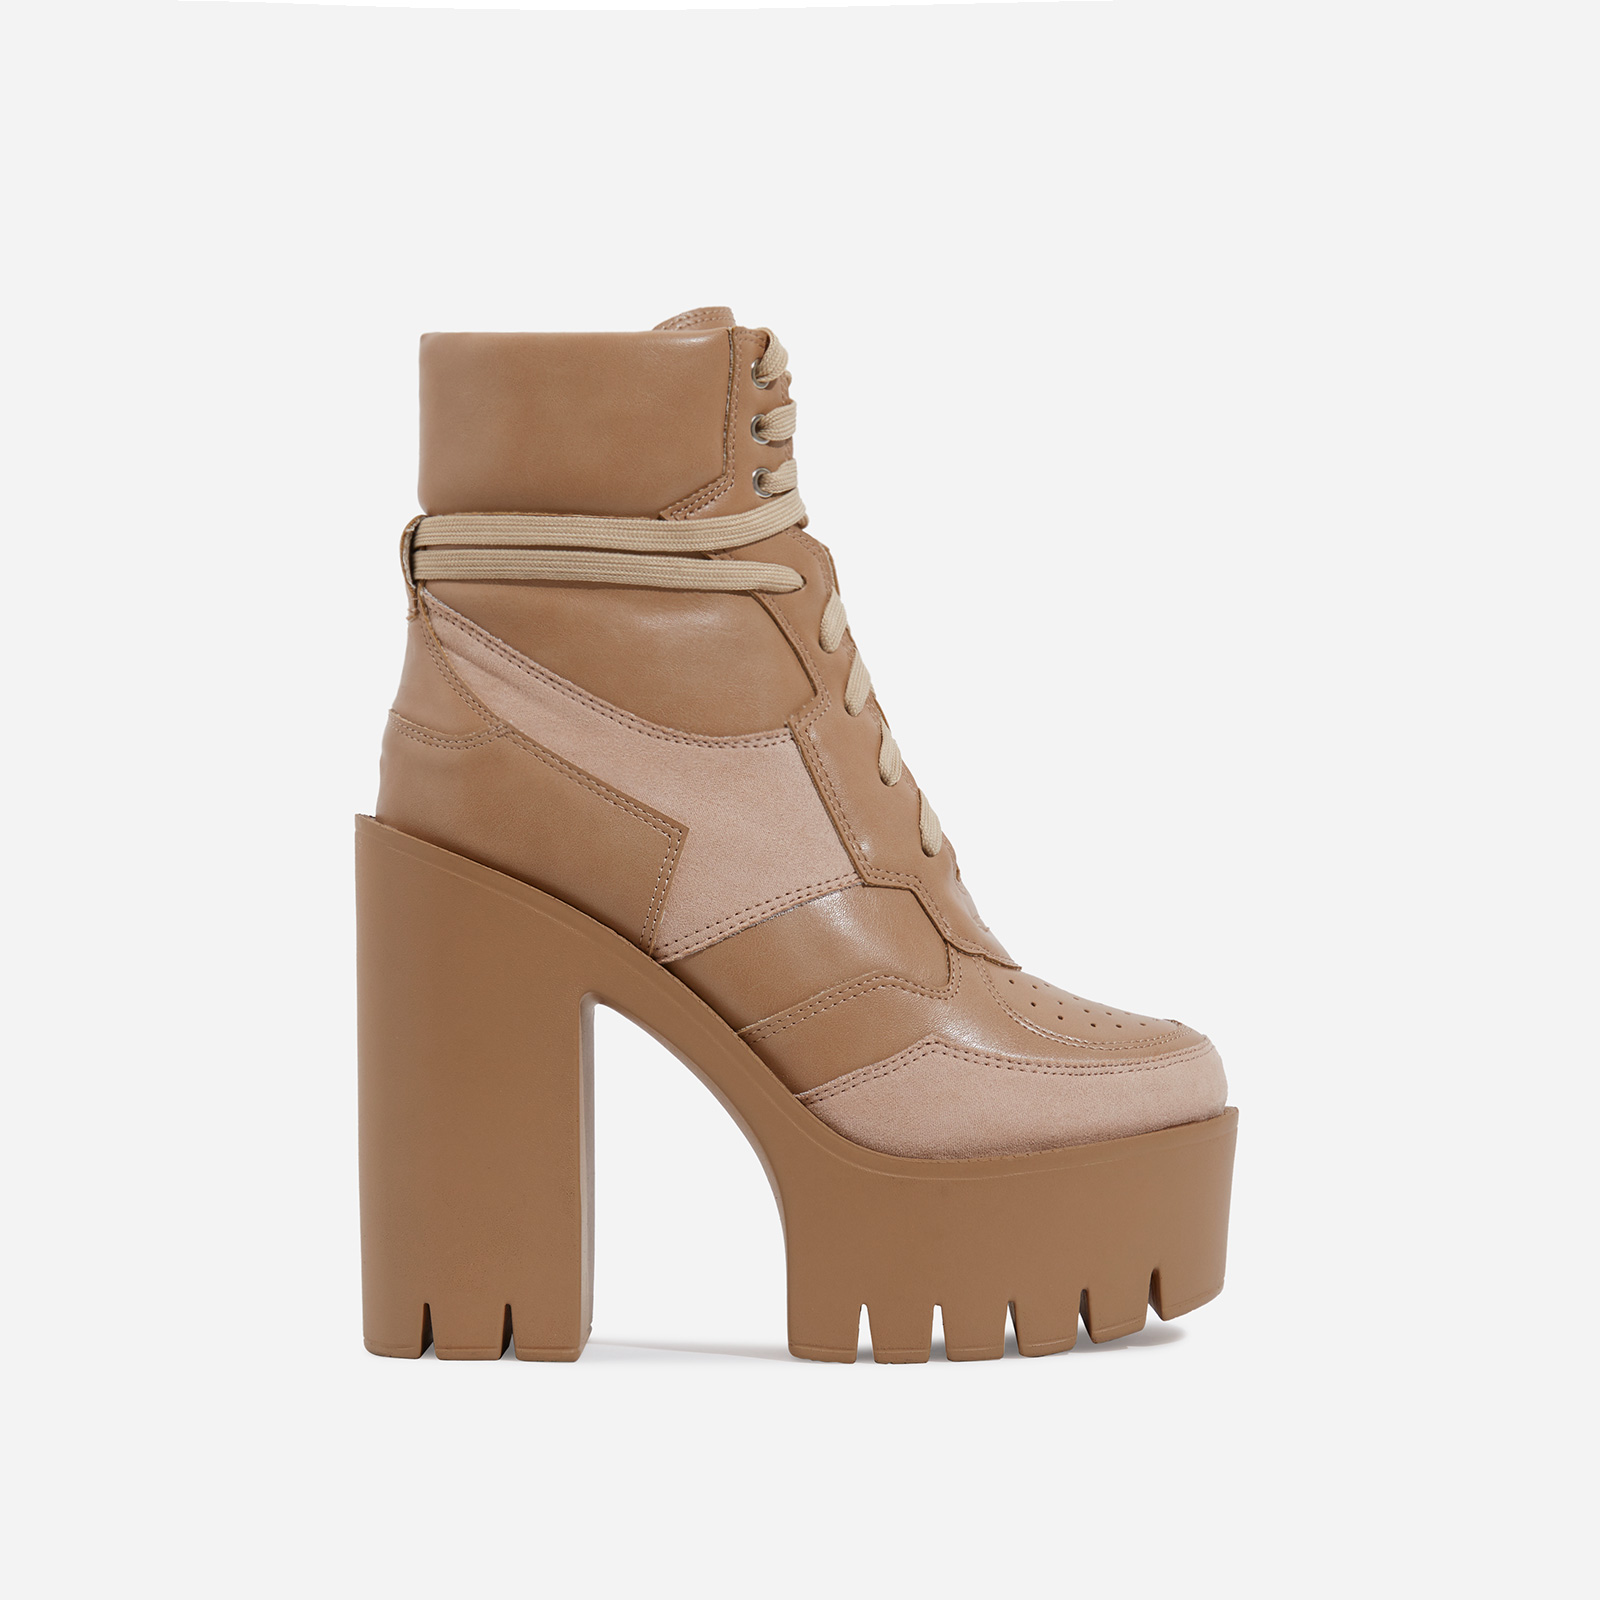 Penni Platform Lace Up Cleated Sole Ankle Biker Boot In Nude Faux Leather